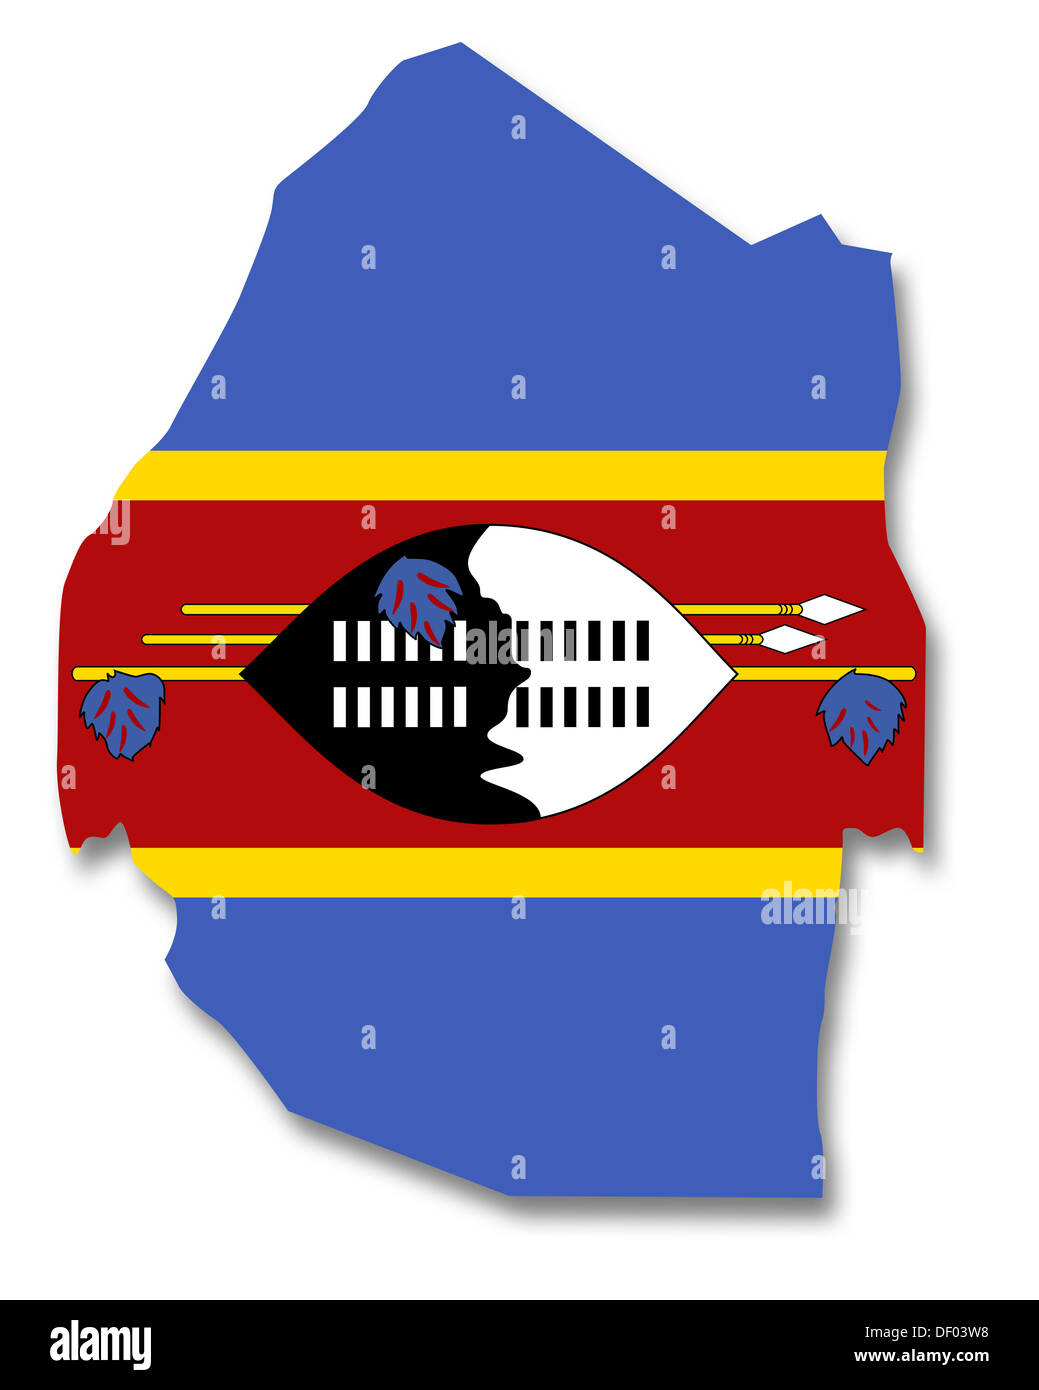 Map and flag of Swaziland Stock Photo